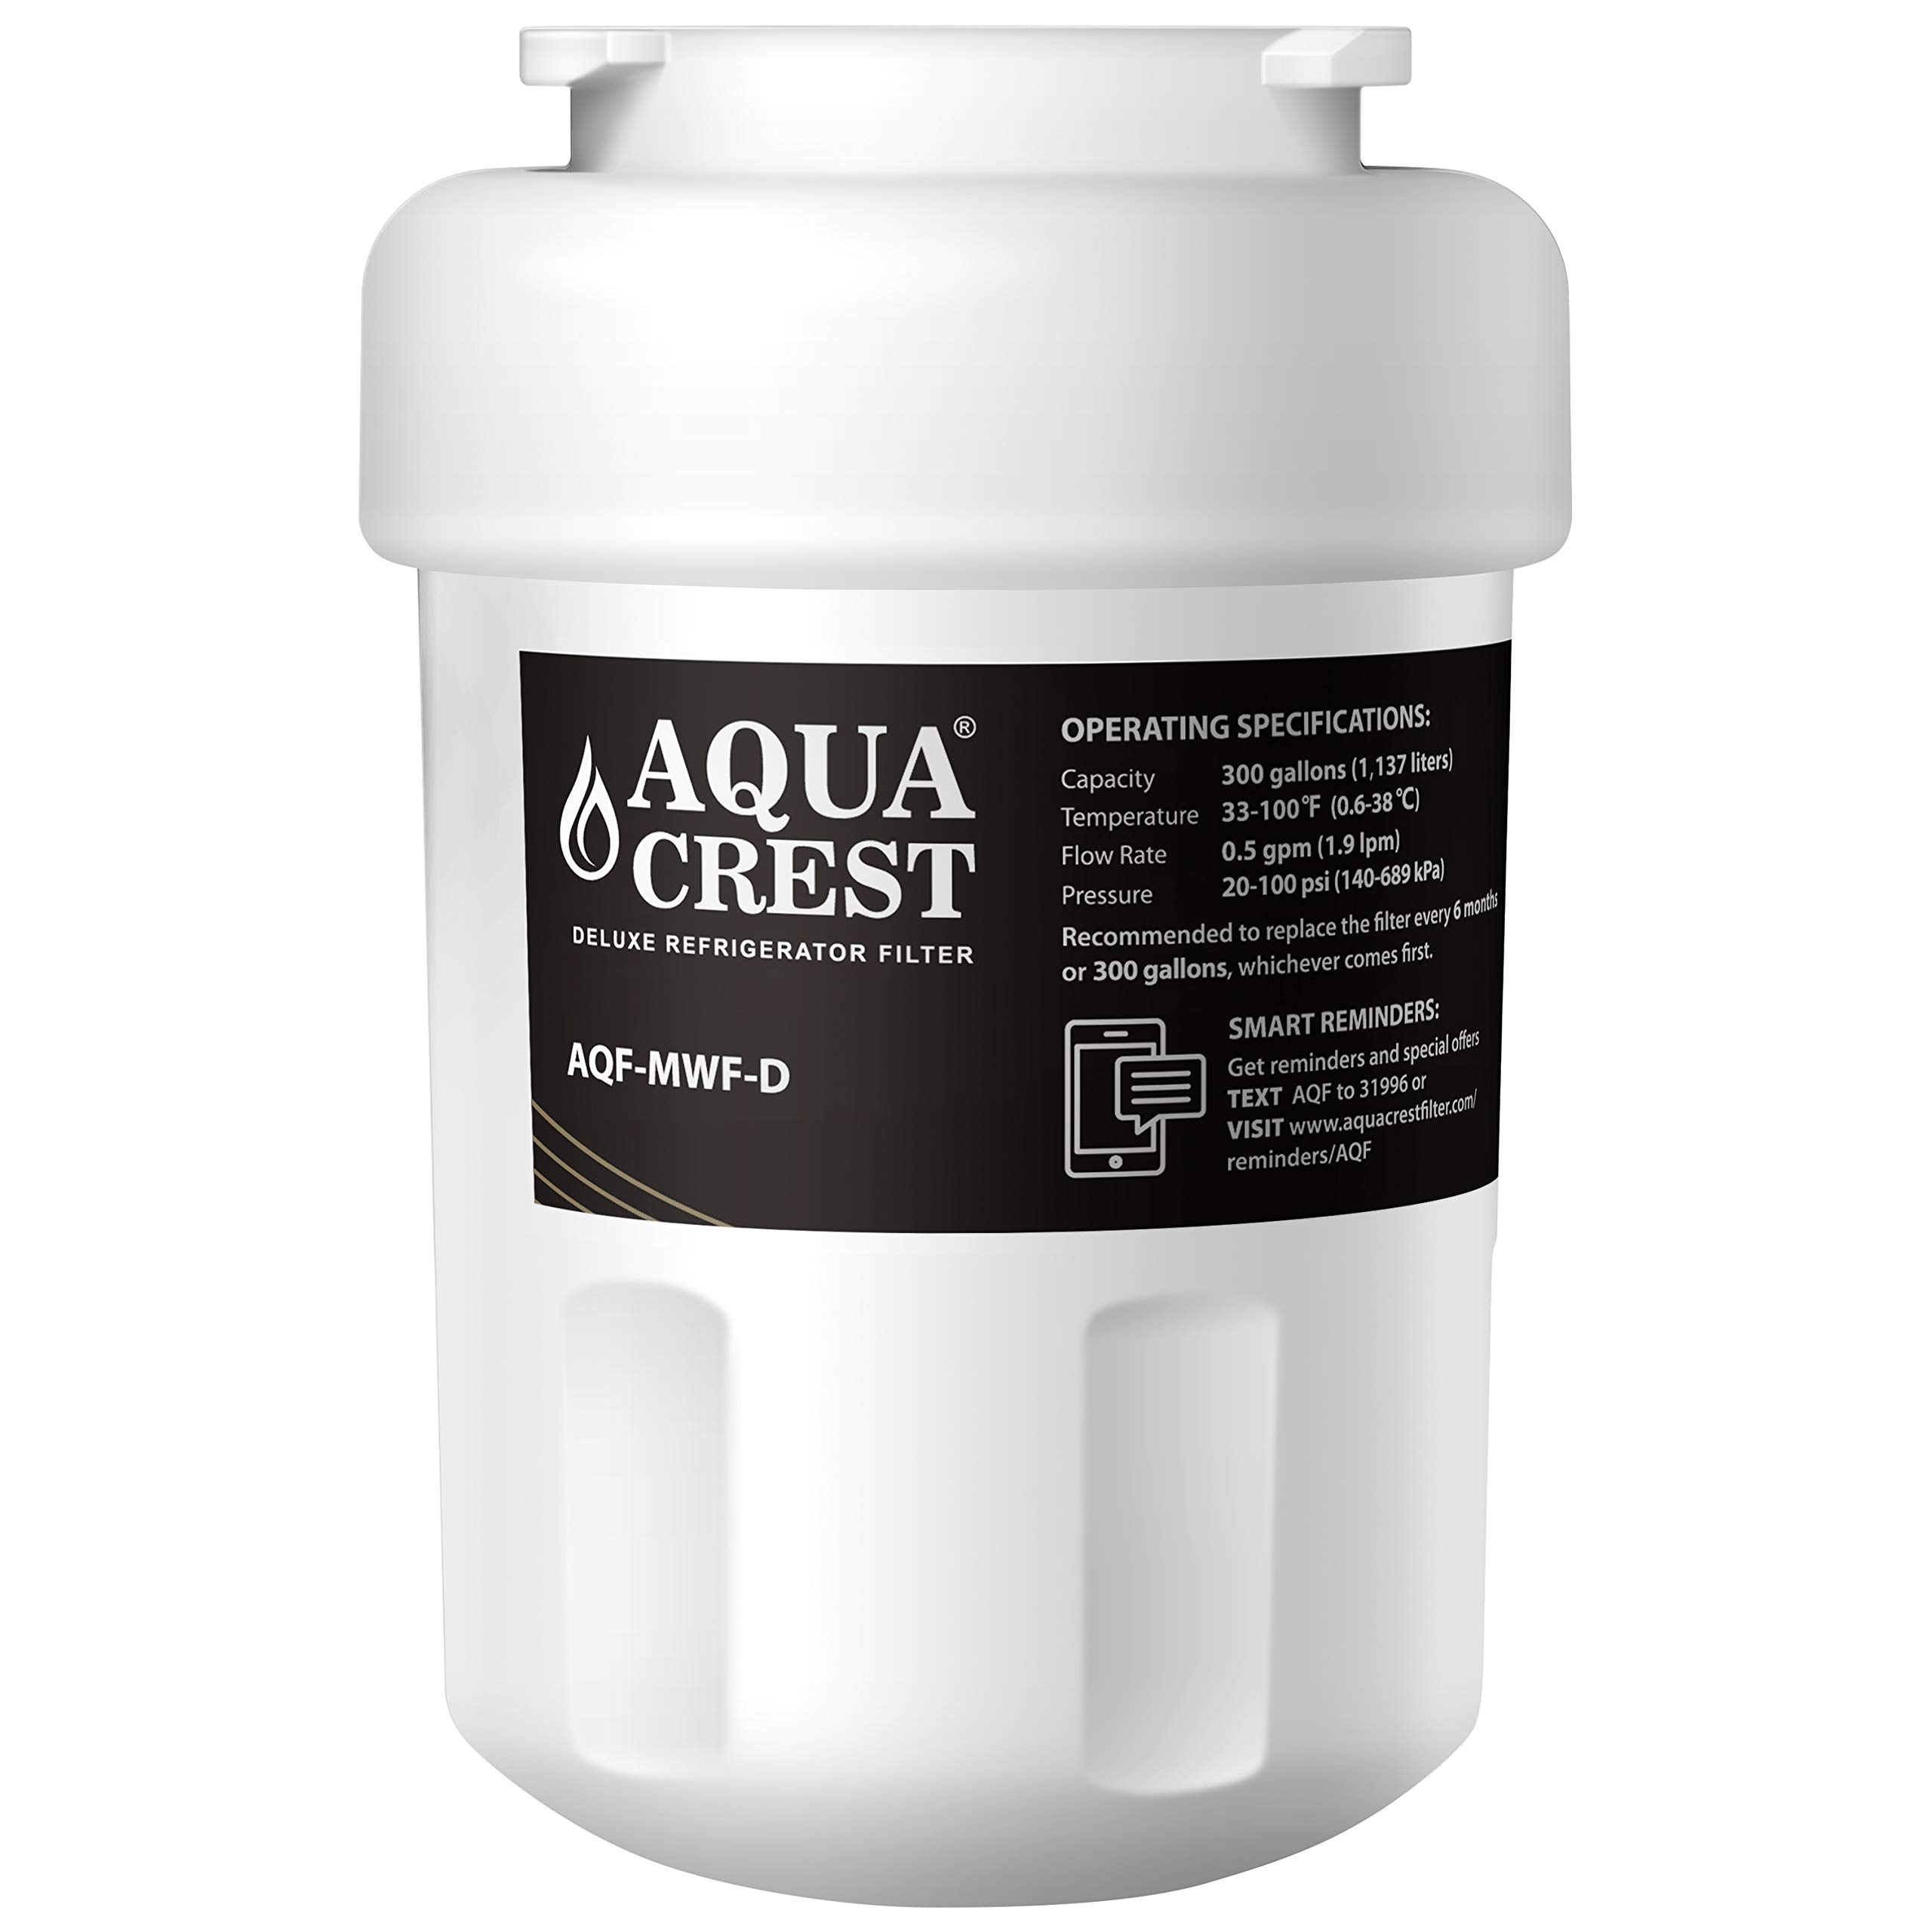 AQUA CREST MWF NSF 401,53&42 Replacement Refrigerator Water Filter, Compatible with GE MWF SmartWater, MWFA, MWFP, GWF, GWFA, Kenmore 46-9991, 9991